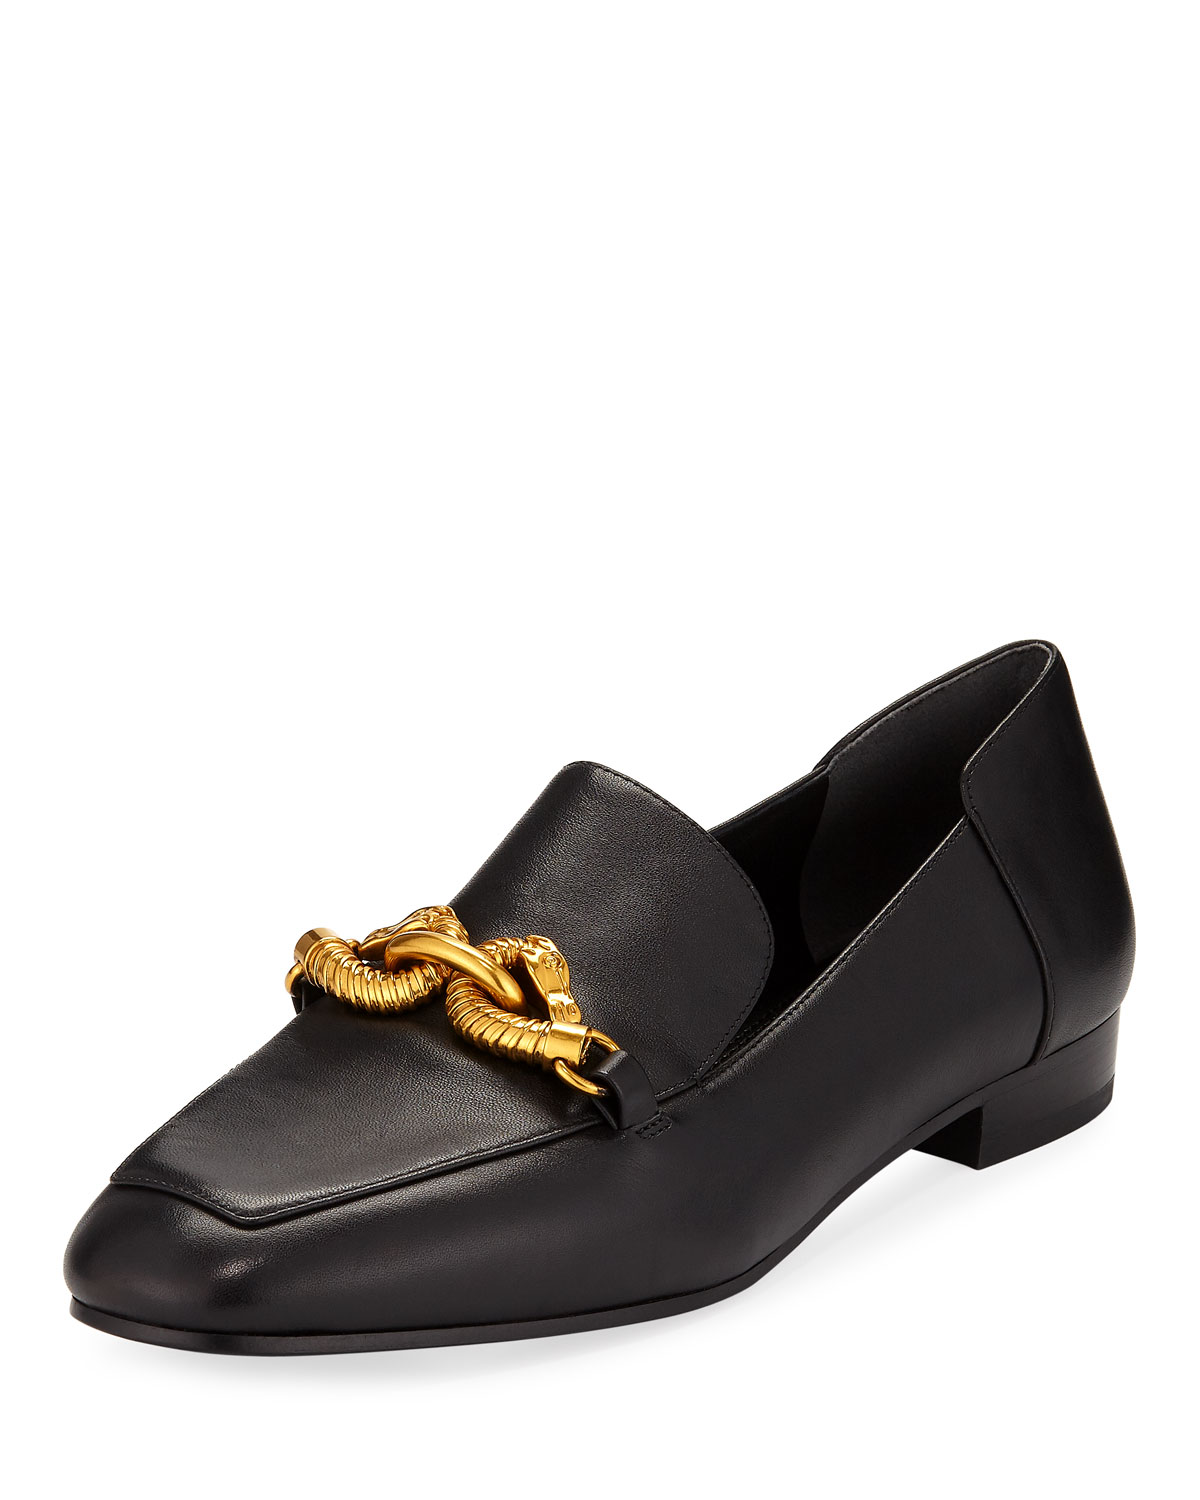 7300006eab9 Tory Burch Jessa Leather Loafers w  Horse Hardware